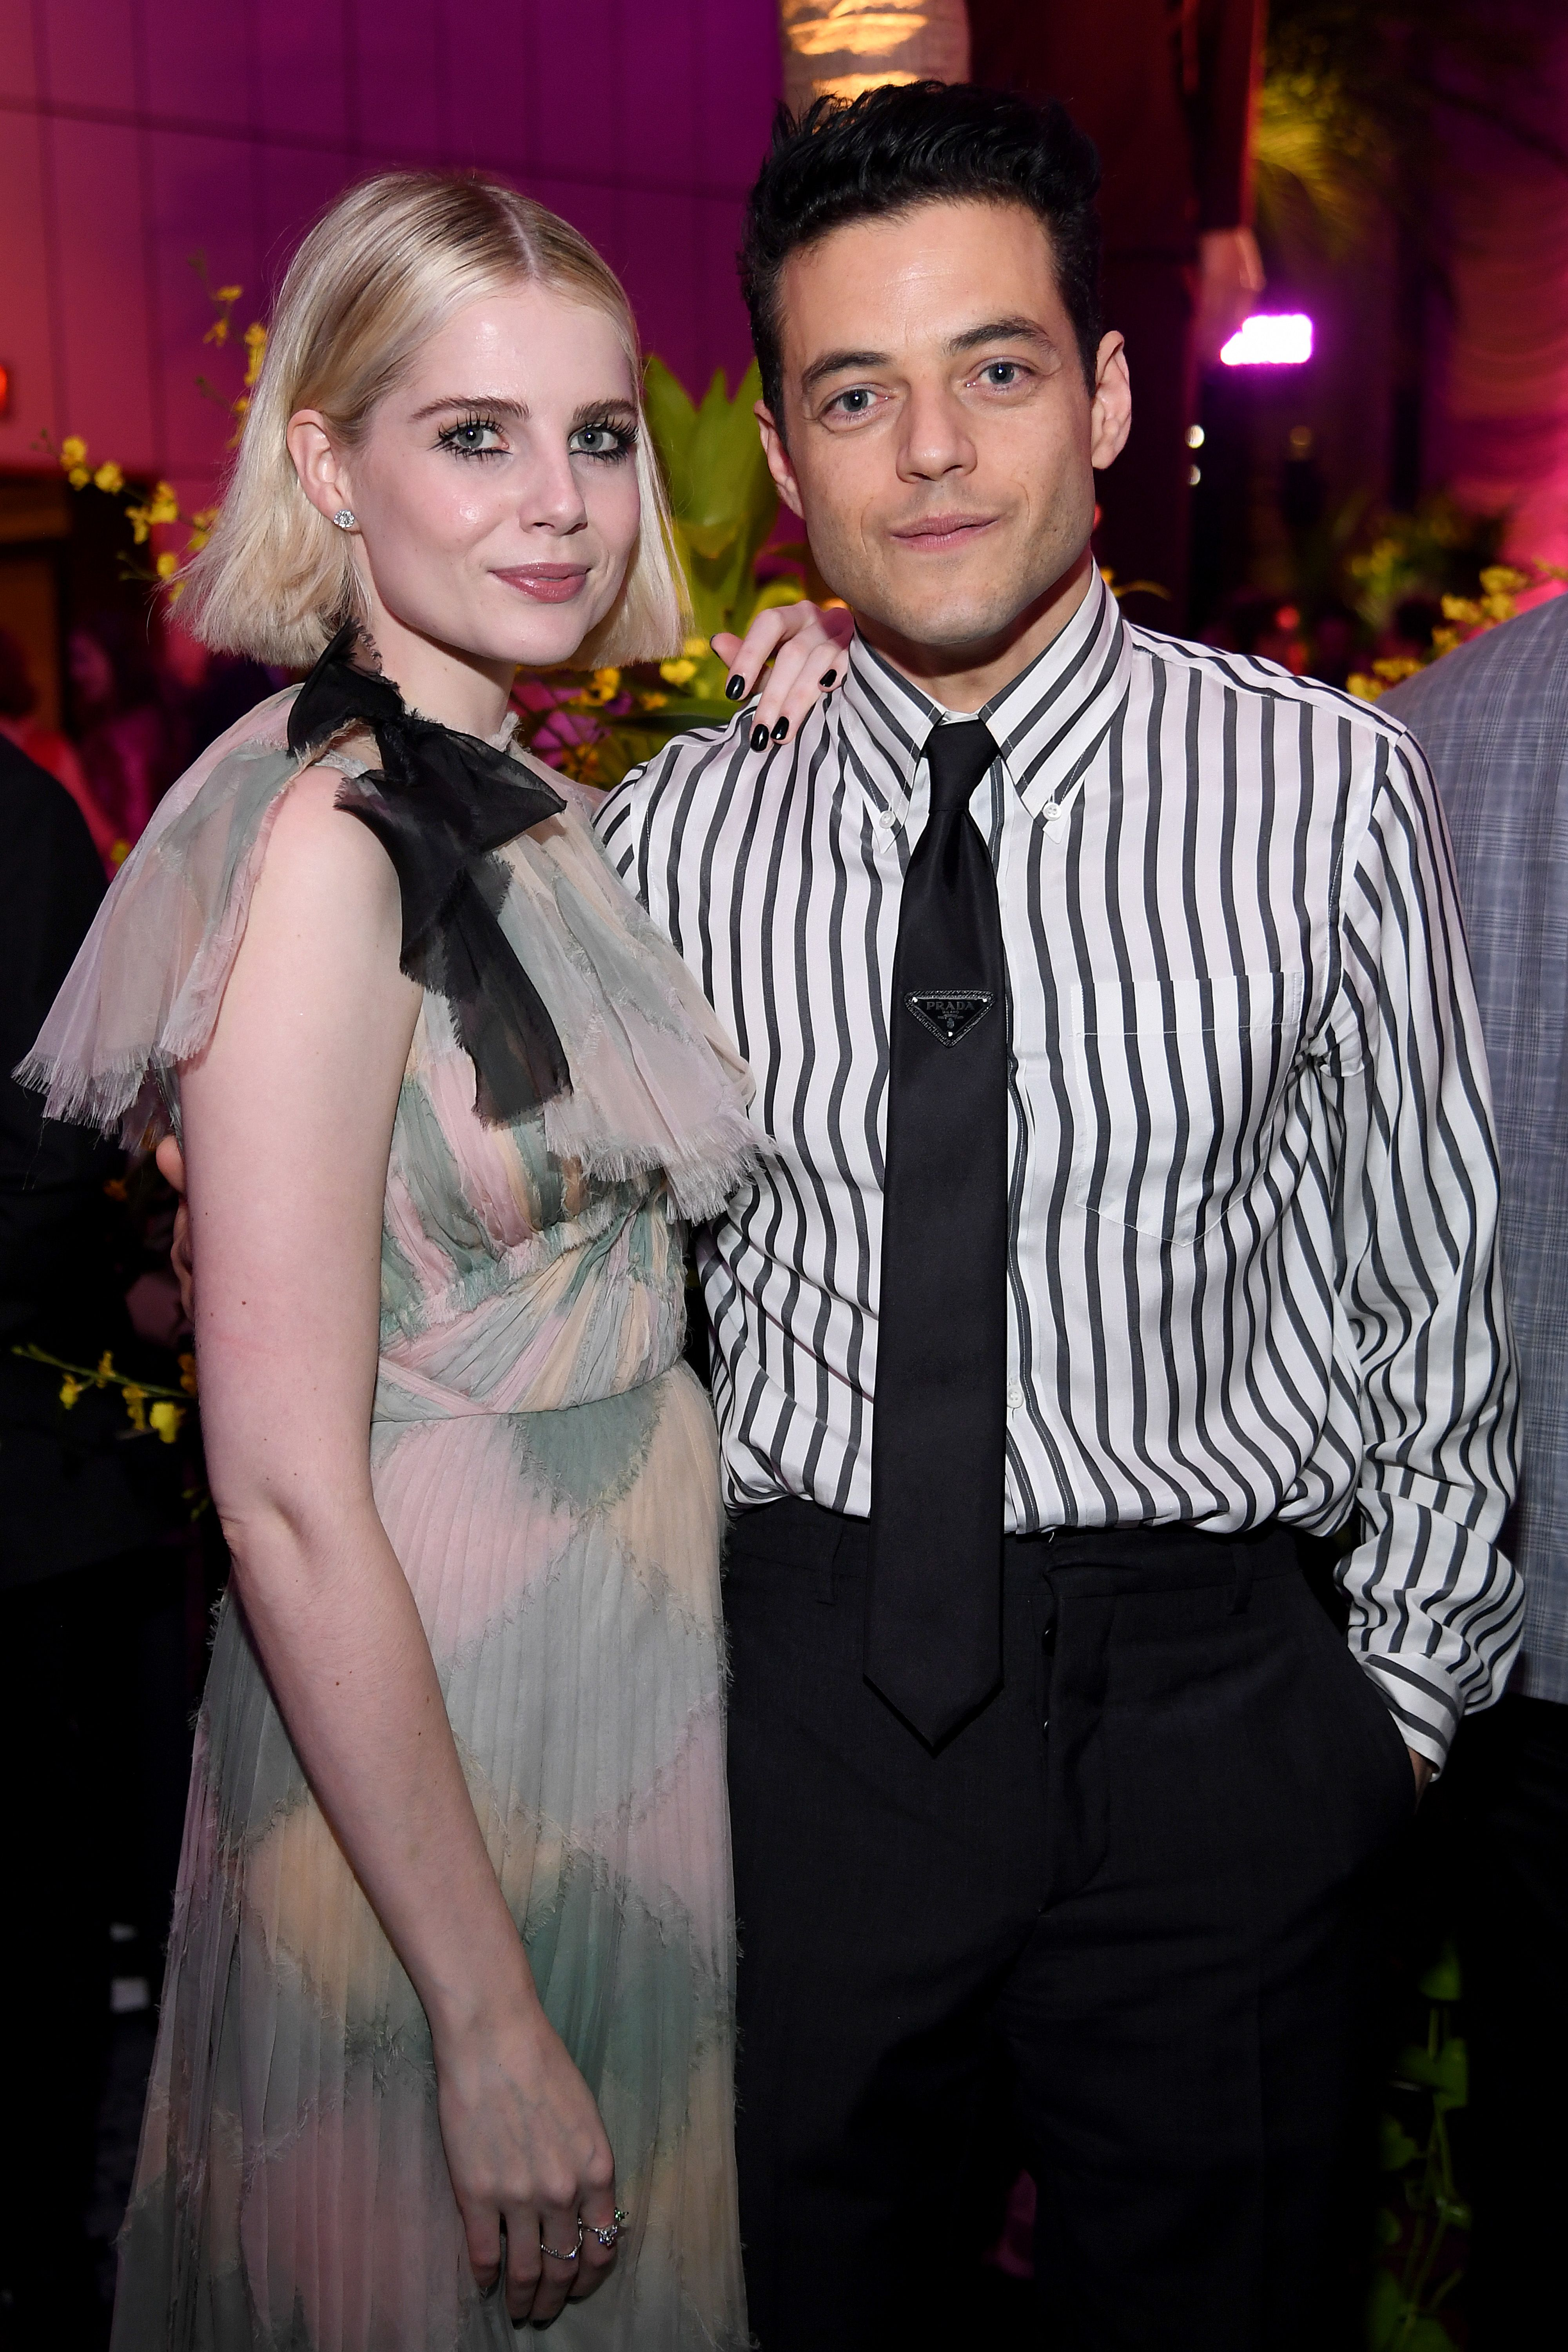 Lucy Boynton and Rami Malek Outdressed Everyone for Their Date at The Politician's After Party